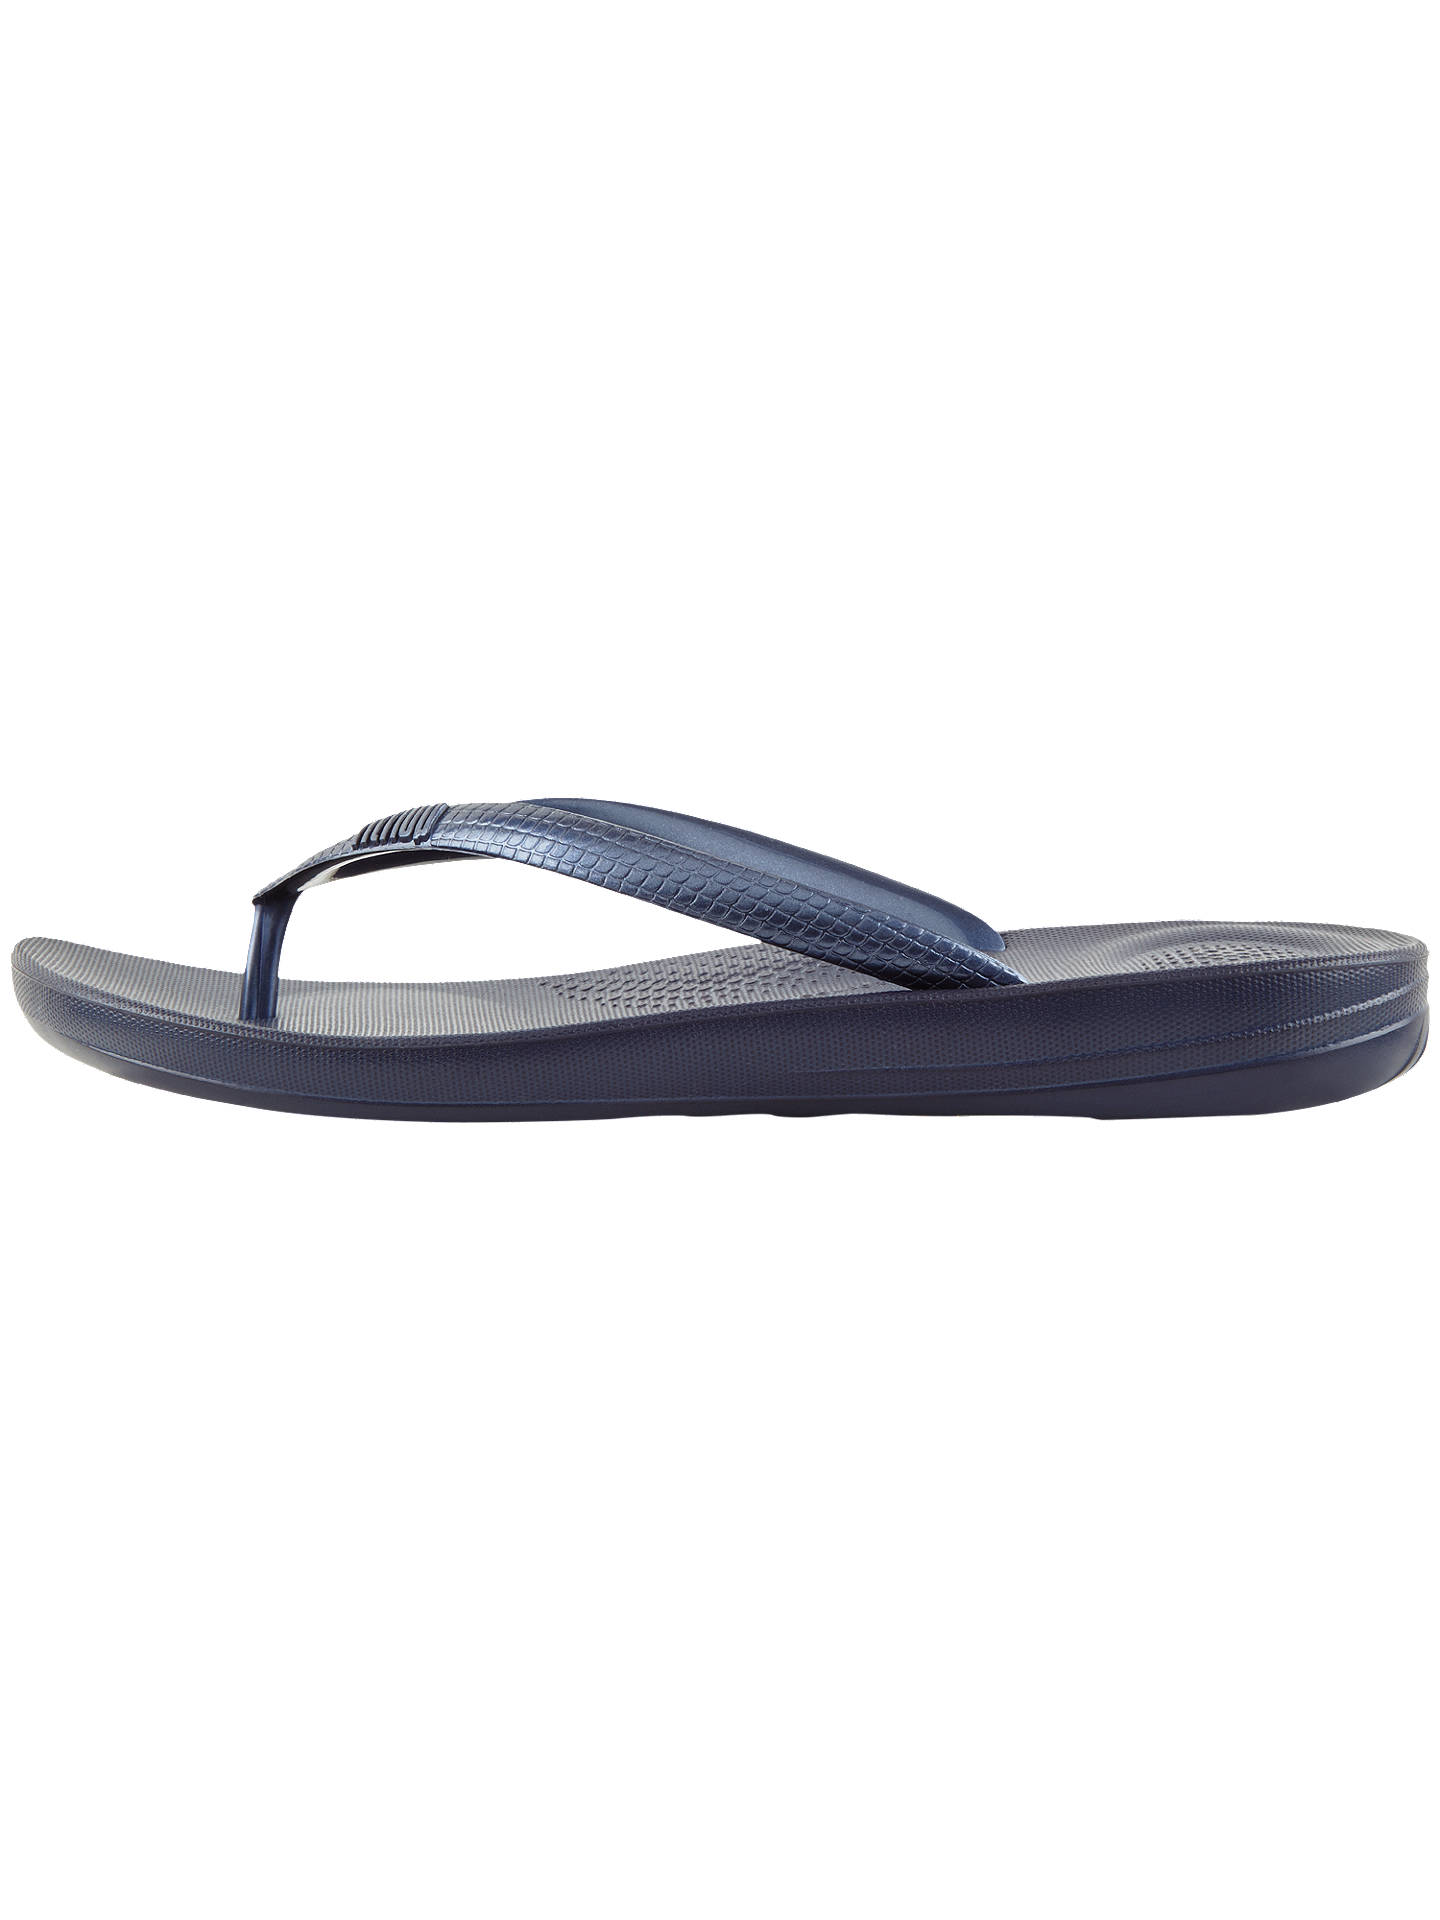 ae15762d5 Buy FitFlop Iqushion Ergonomic Flip Flops